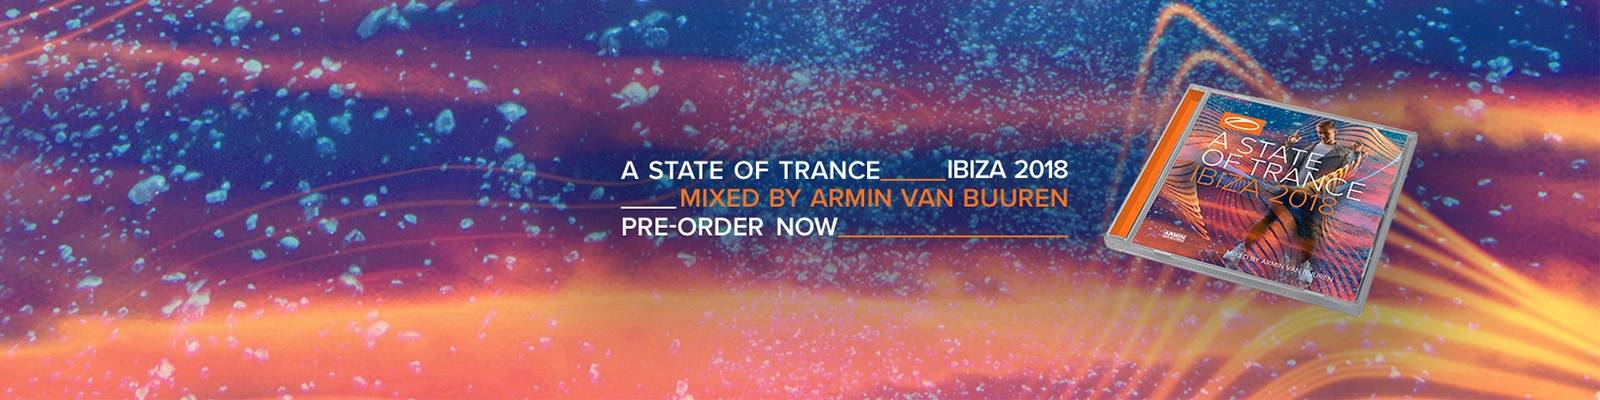 Attention Trance Family! A State Of Trance, Ibiza 2018 is now available for pre-order!